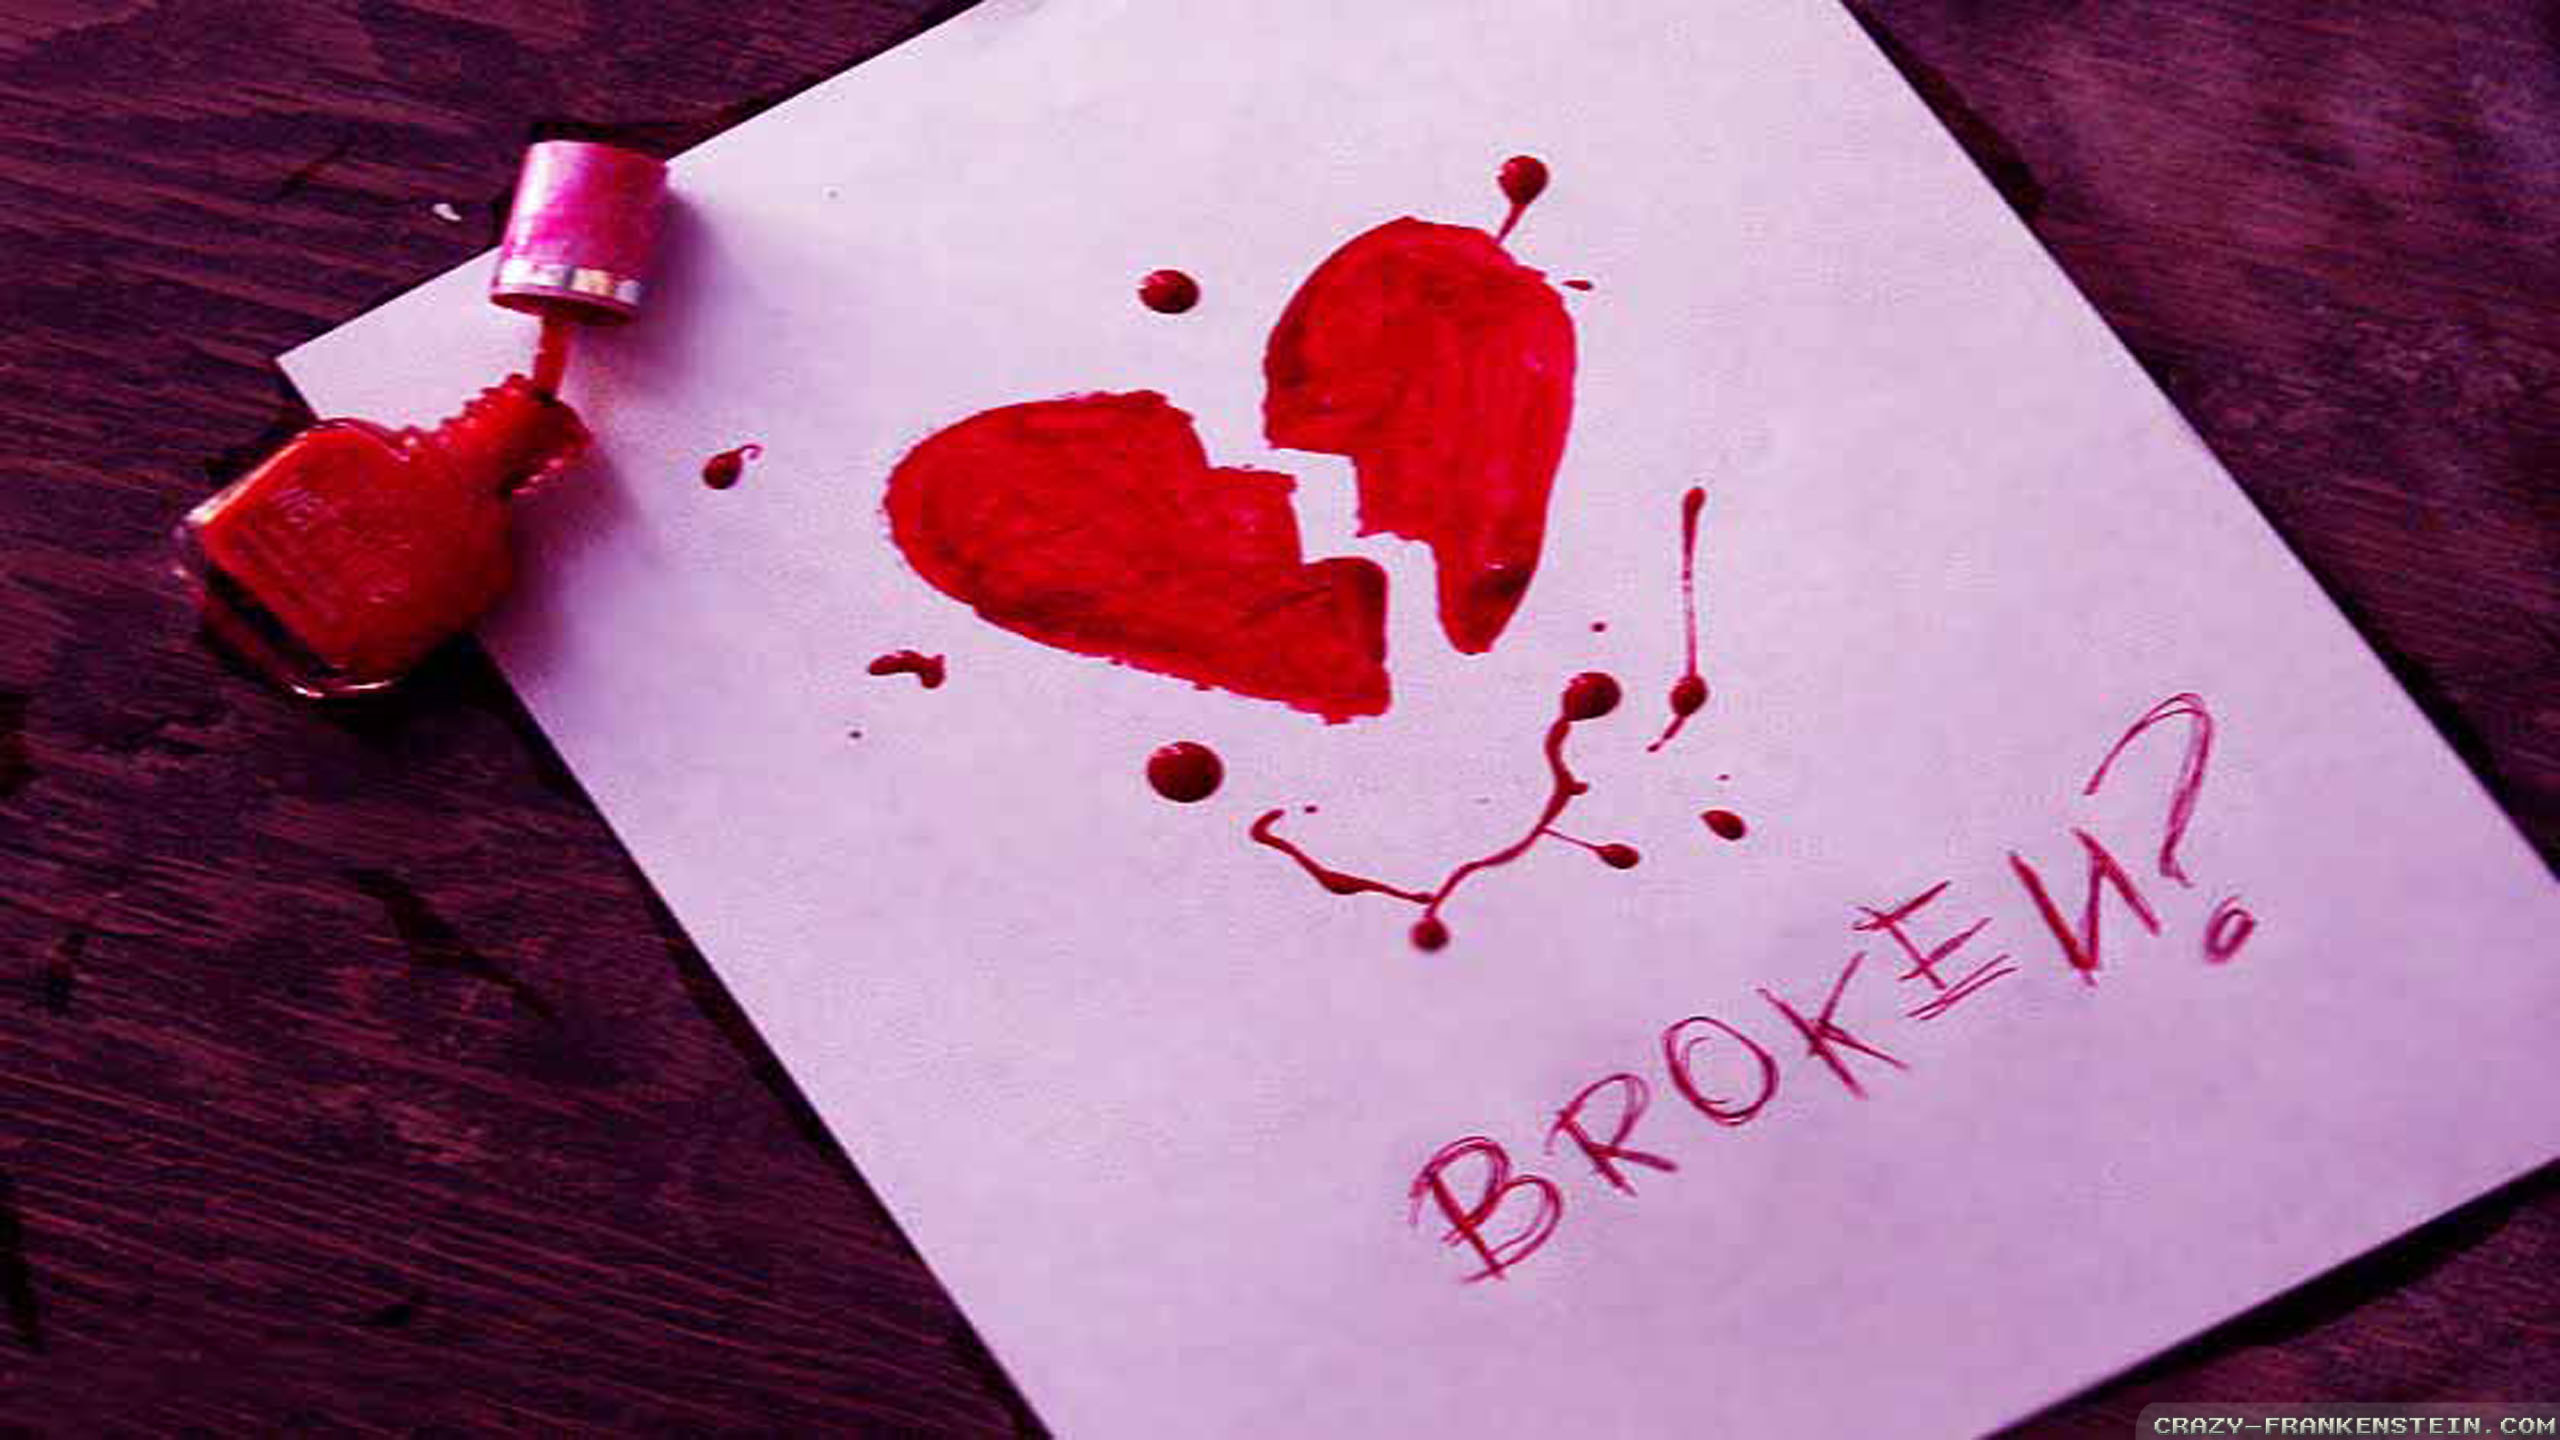 Broken Heart Quotes Wallpapers Free Download Broken Heart Wallpaper 72 Images